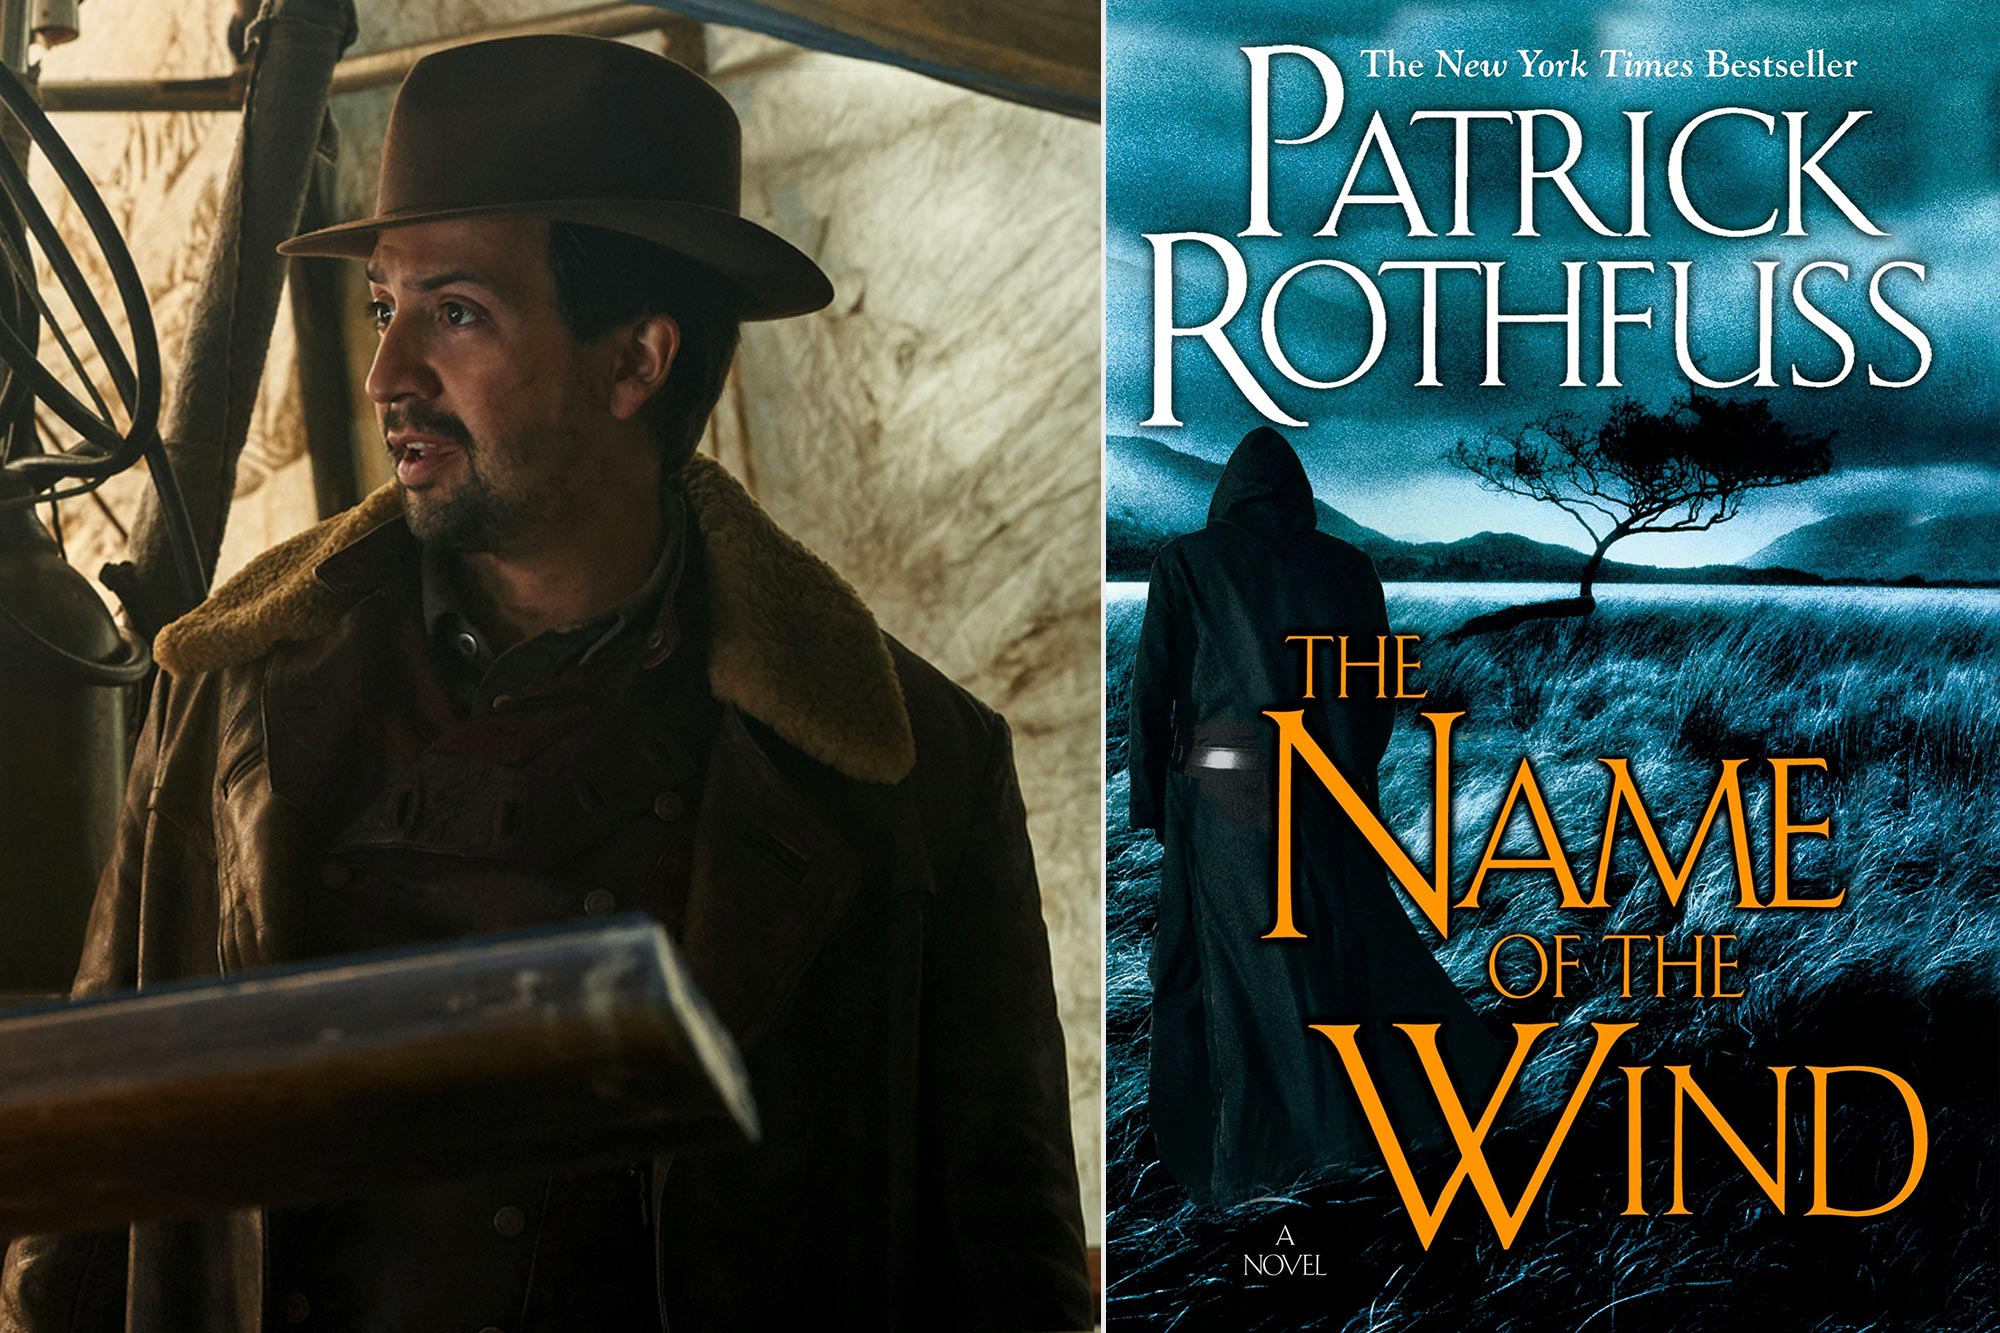 His Dark Materials; The Name of the Wind